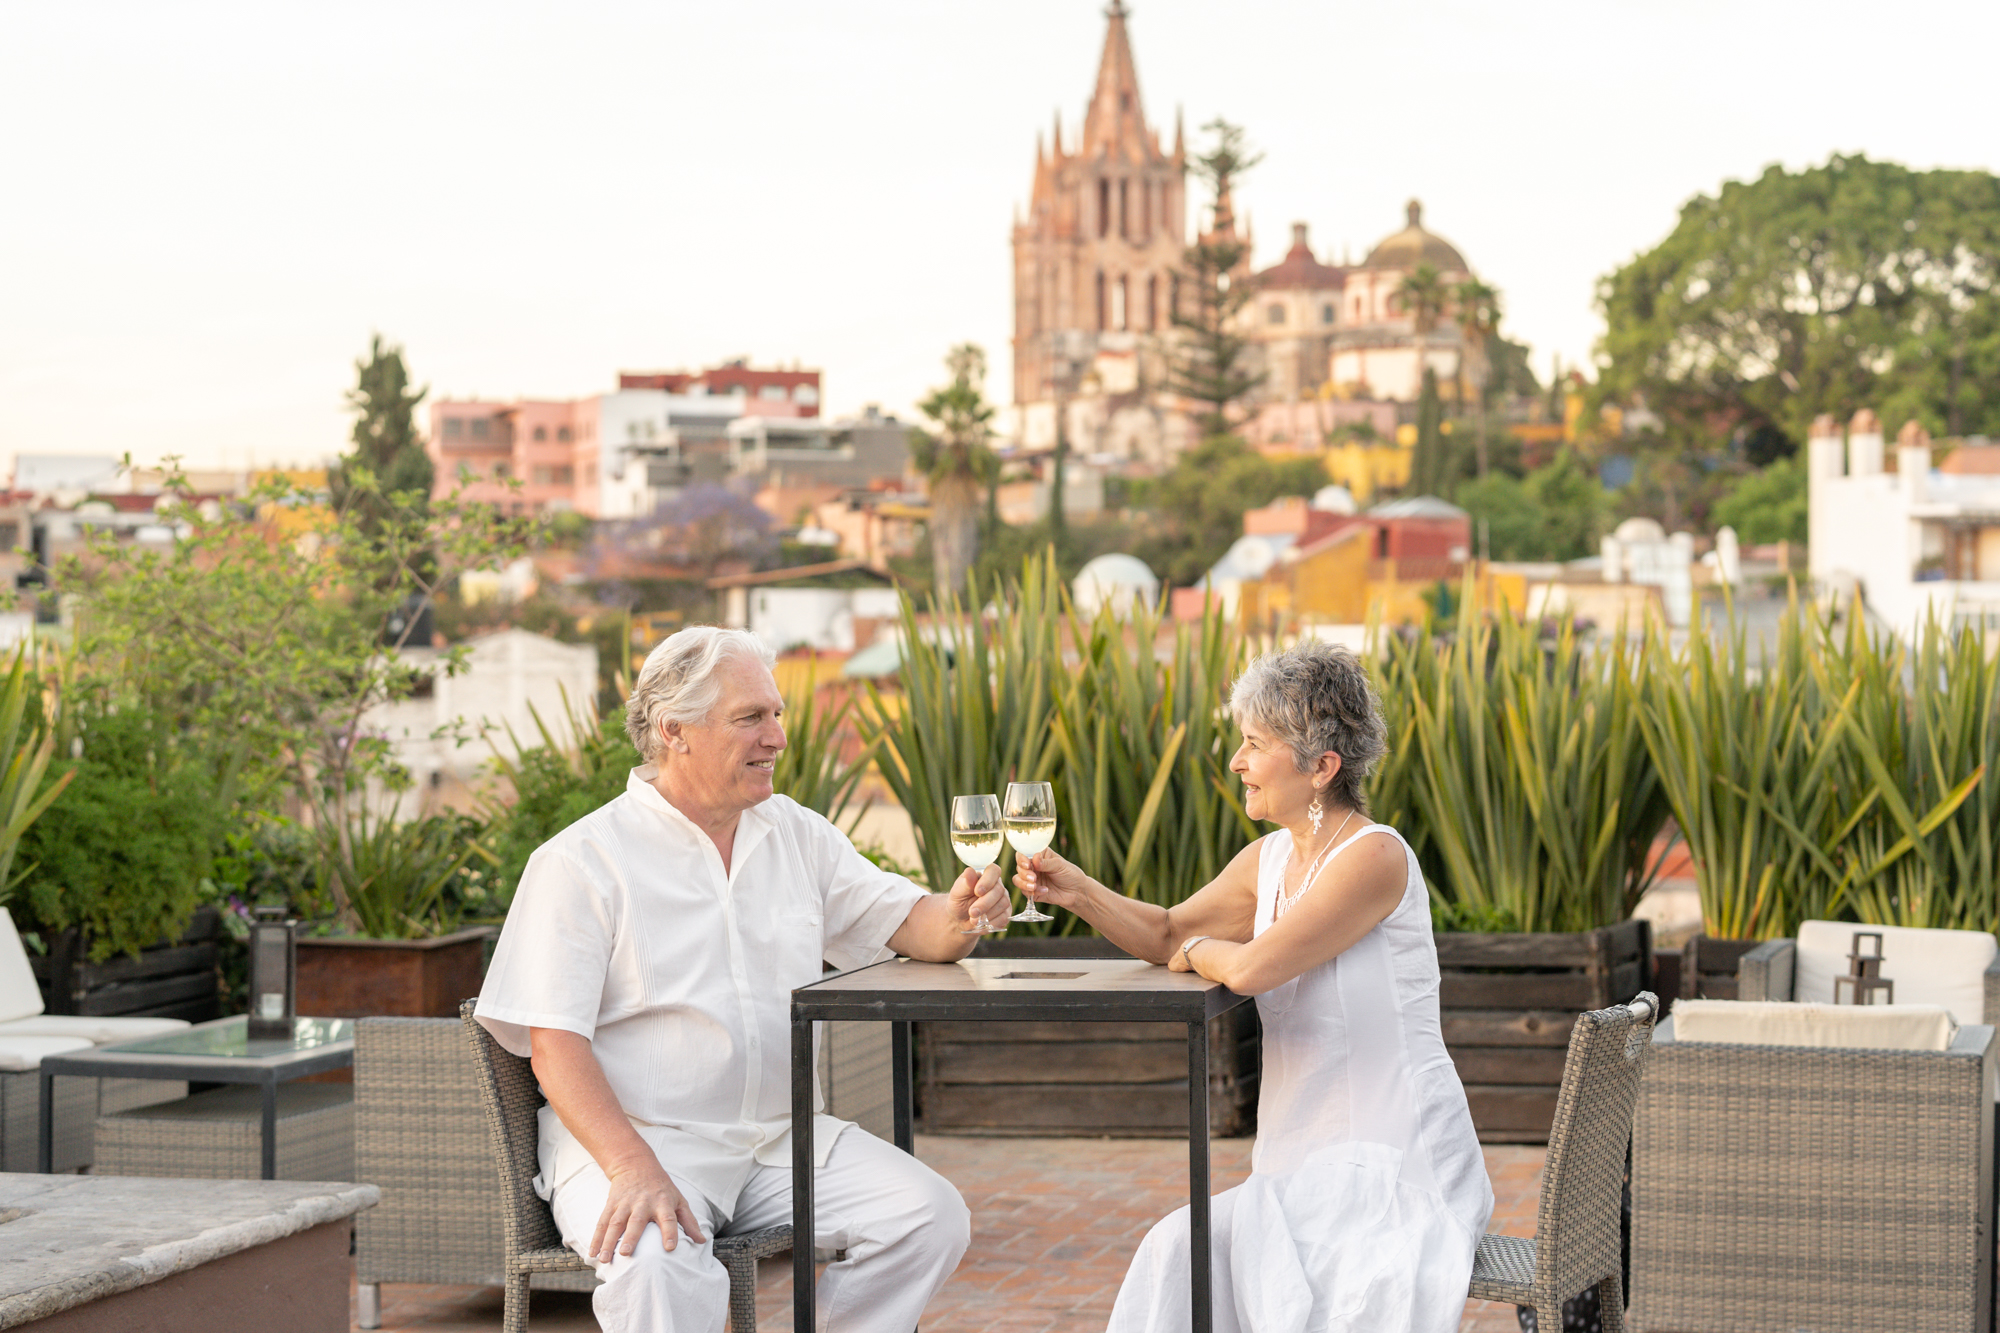 Photoshoot session in San Miguel de Allende with Suzanne and Leo-60.jpg